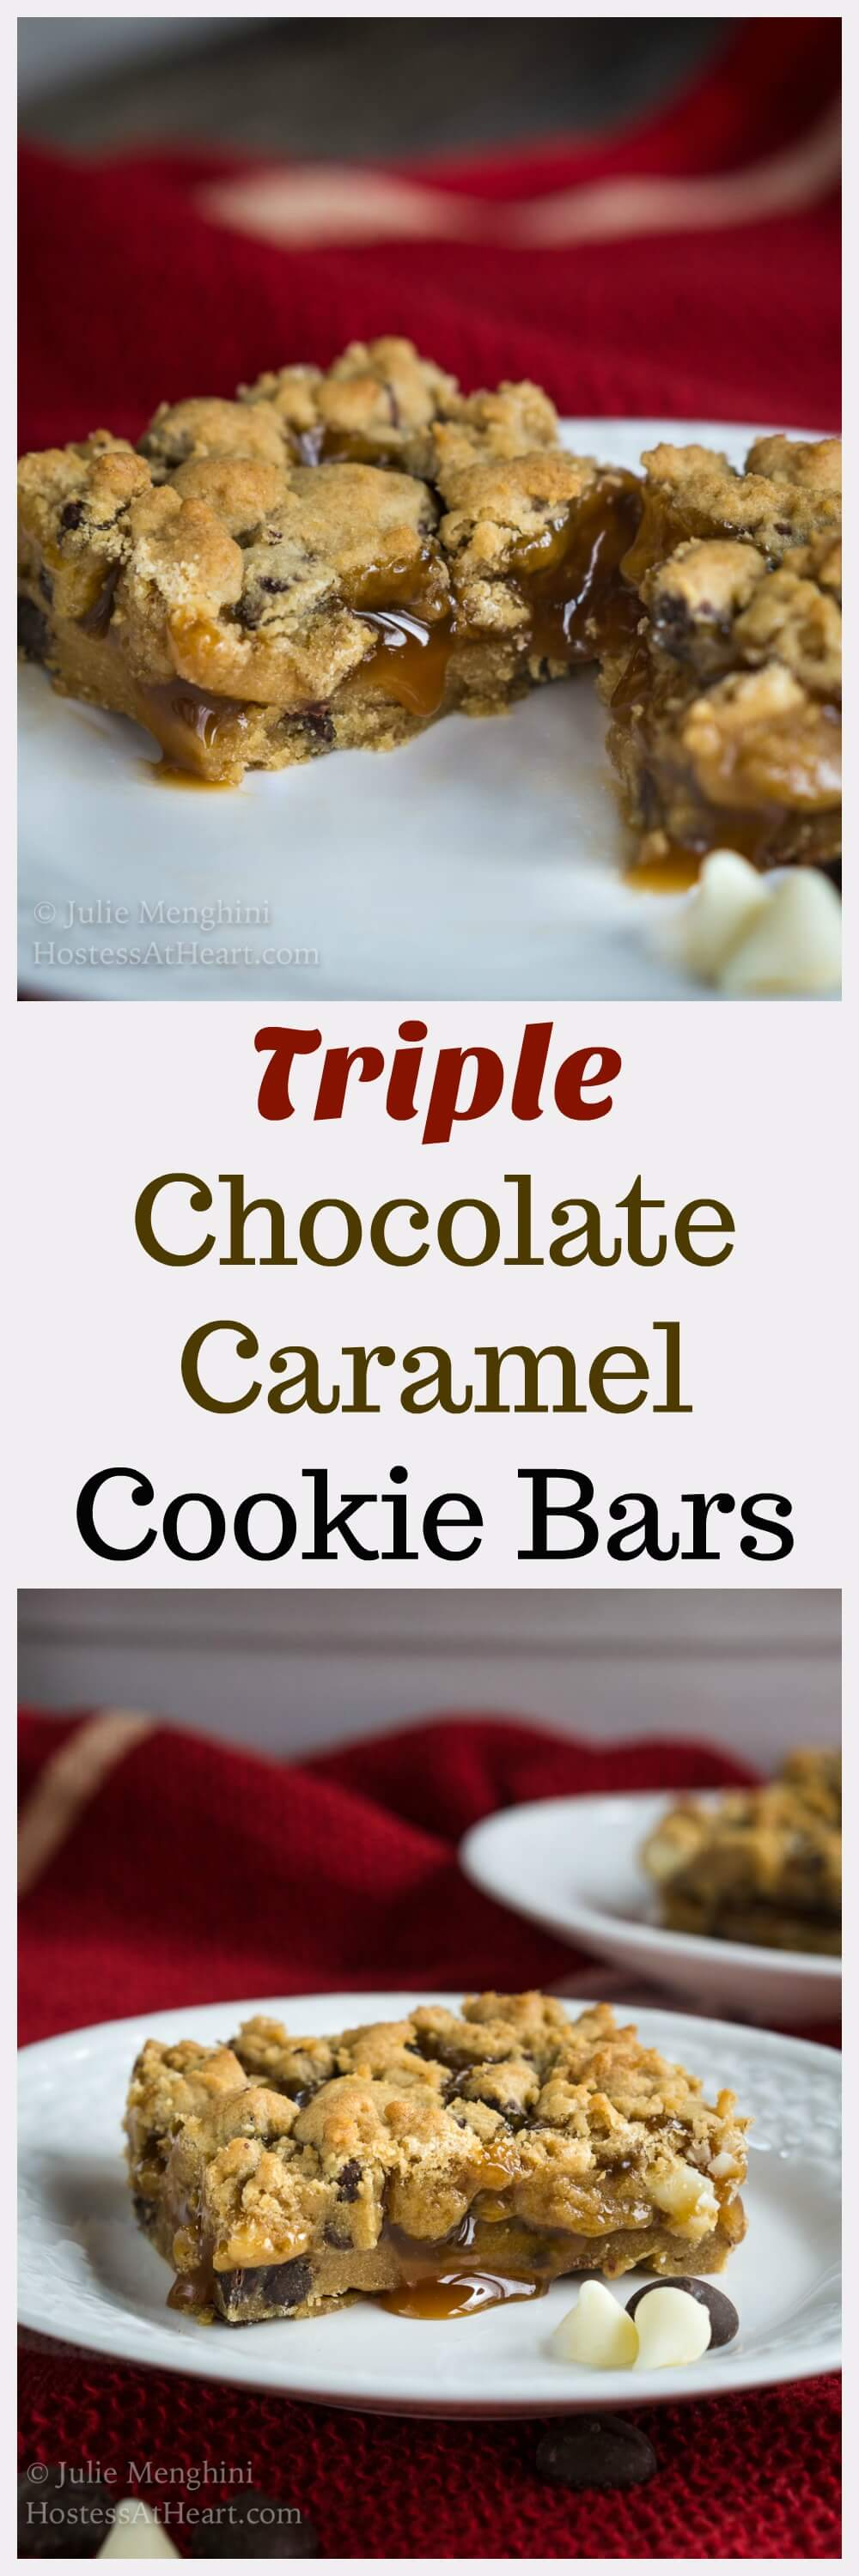 Triple Chocolate Caramel Cookie Bars are soft and gooey and will feed a crowd.  They are rich and can be whipped up in a jiffy! #recipe #homemade #holidaybaking #cookie #cookiebar | Dessert | Easy Homemade Food